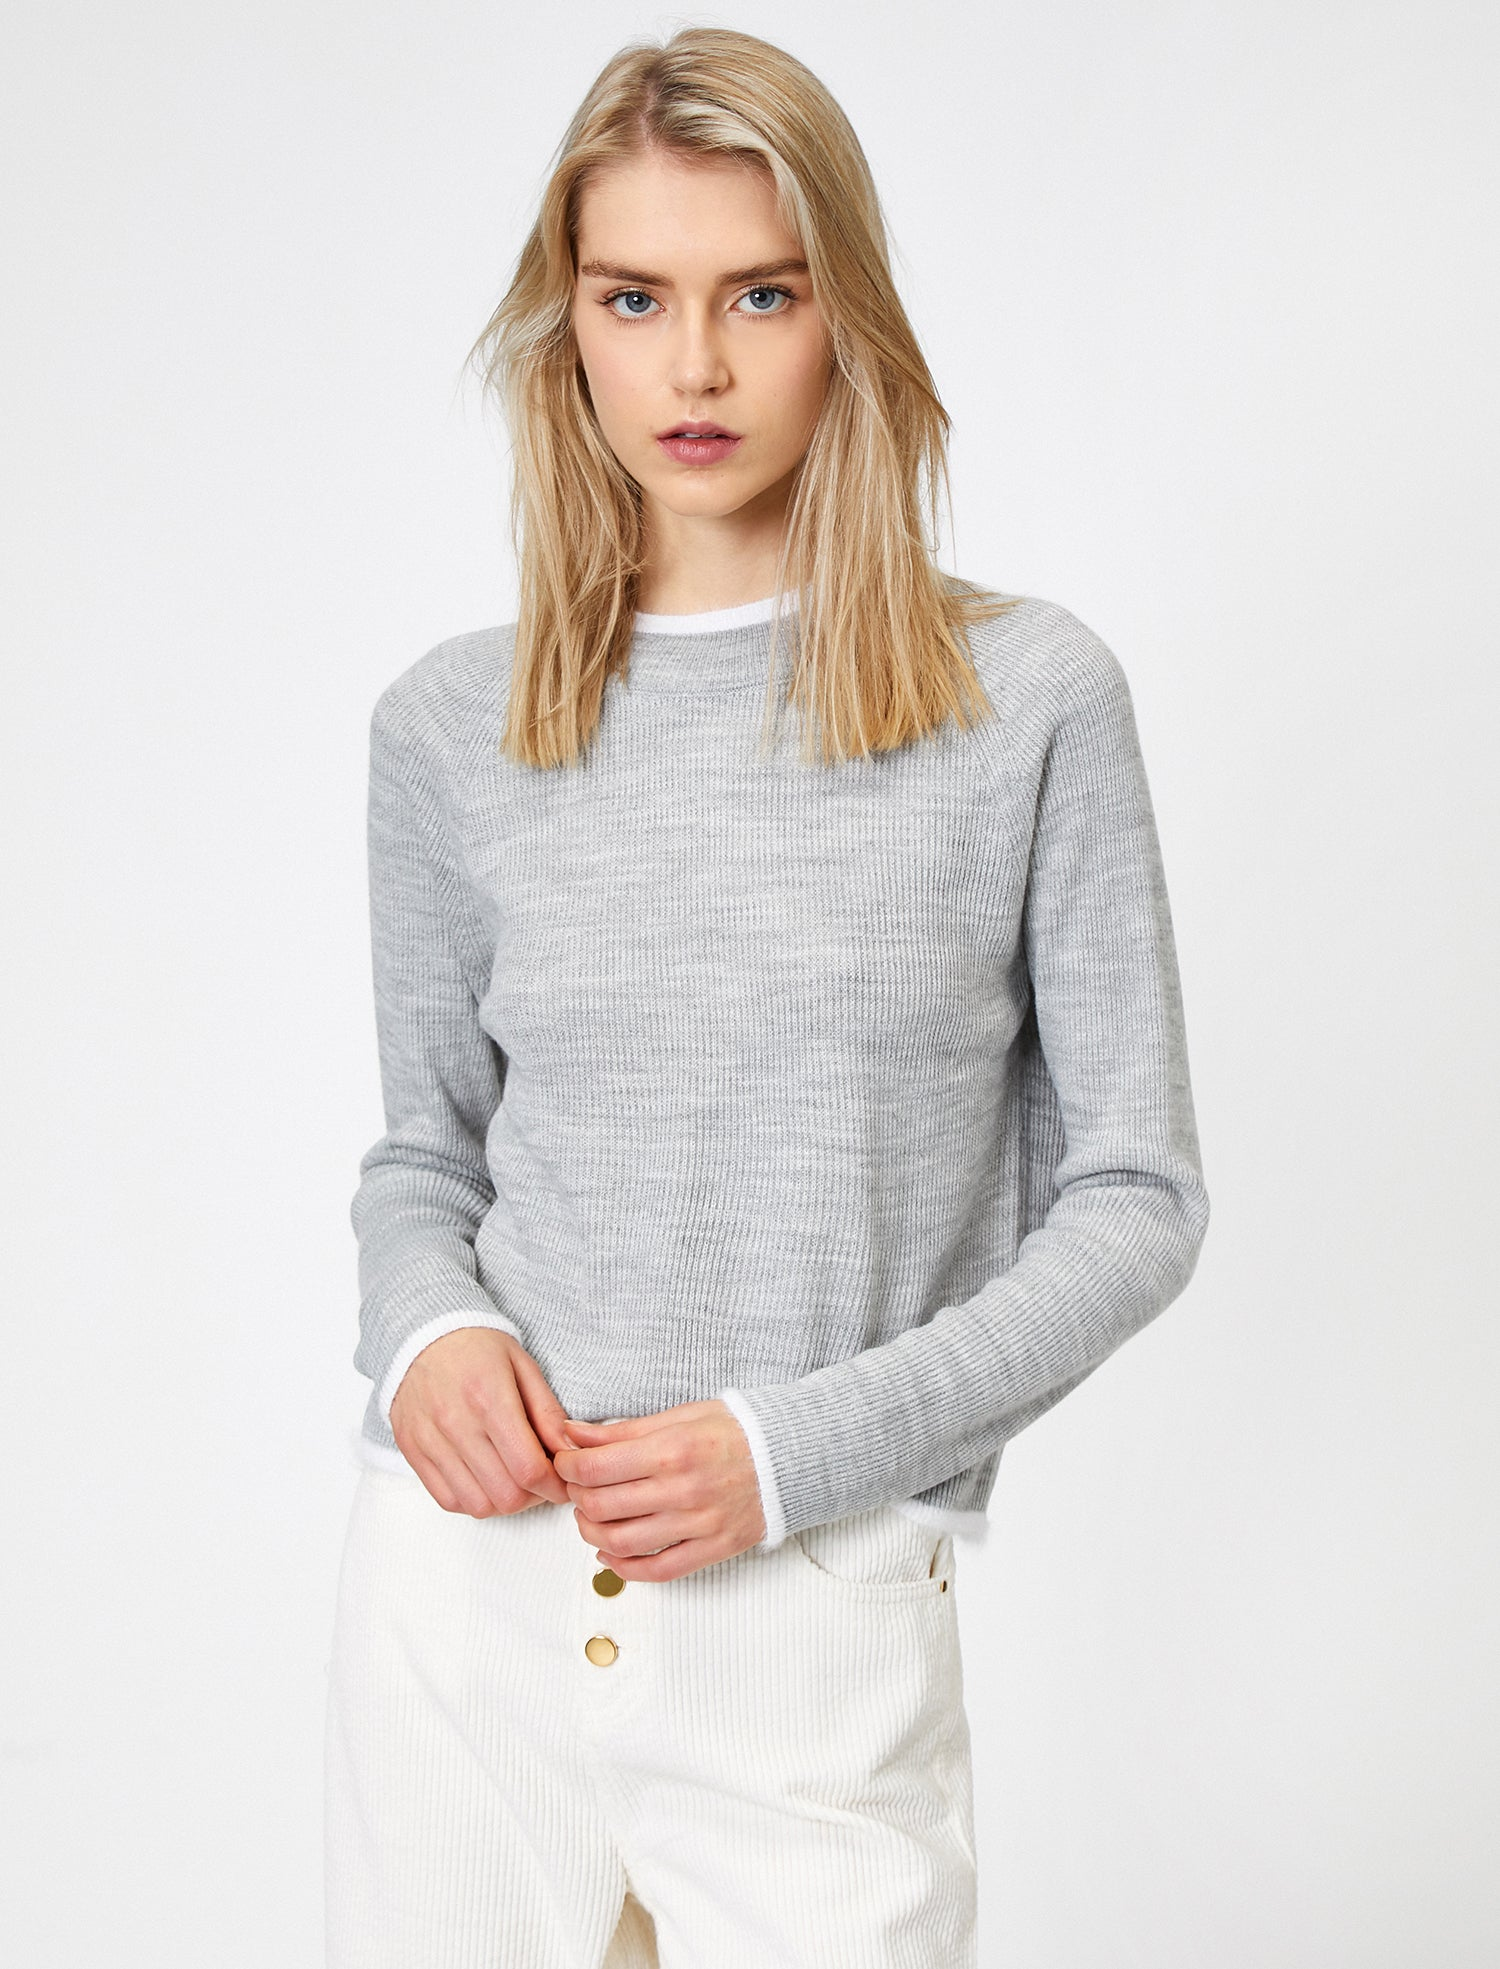 Ribbed Crew Neck Sweater in Grey Heather